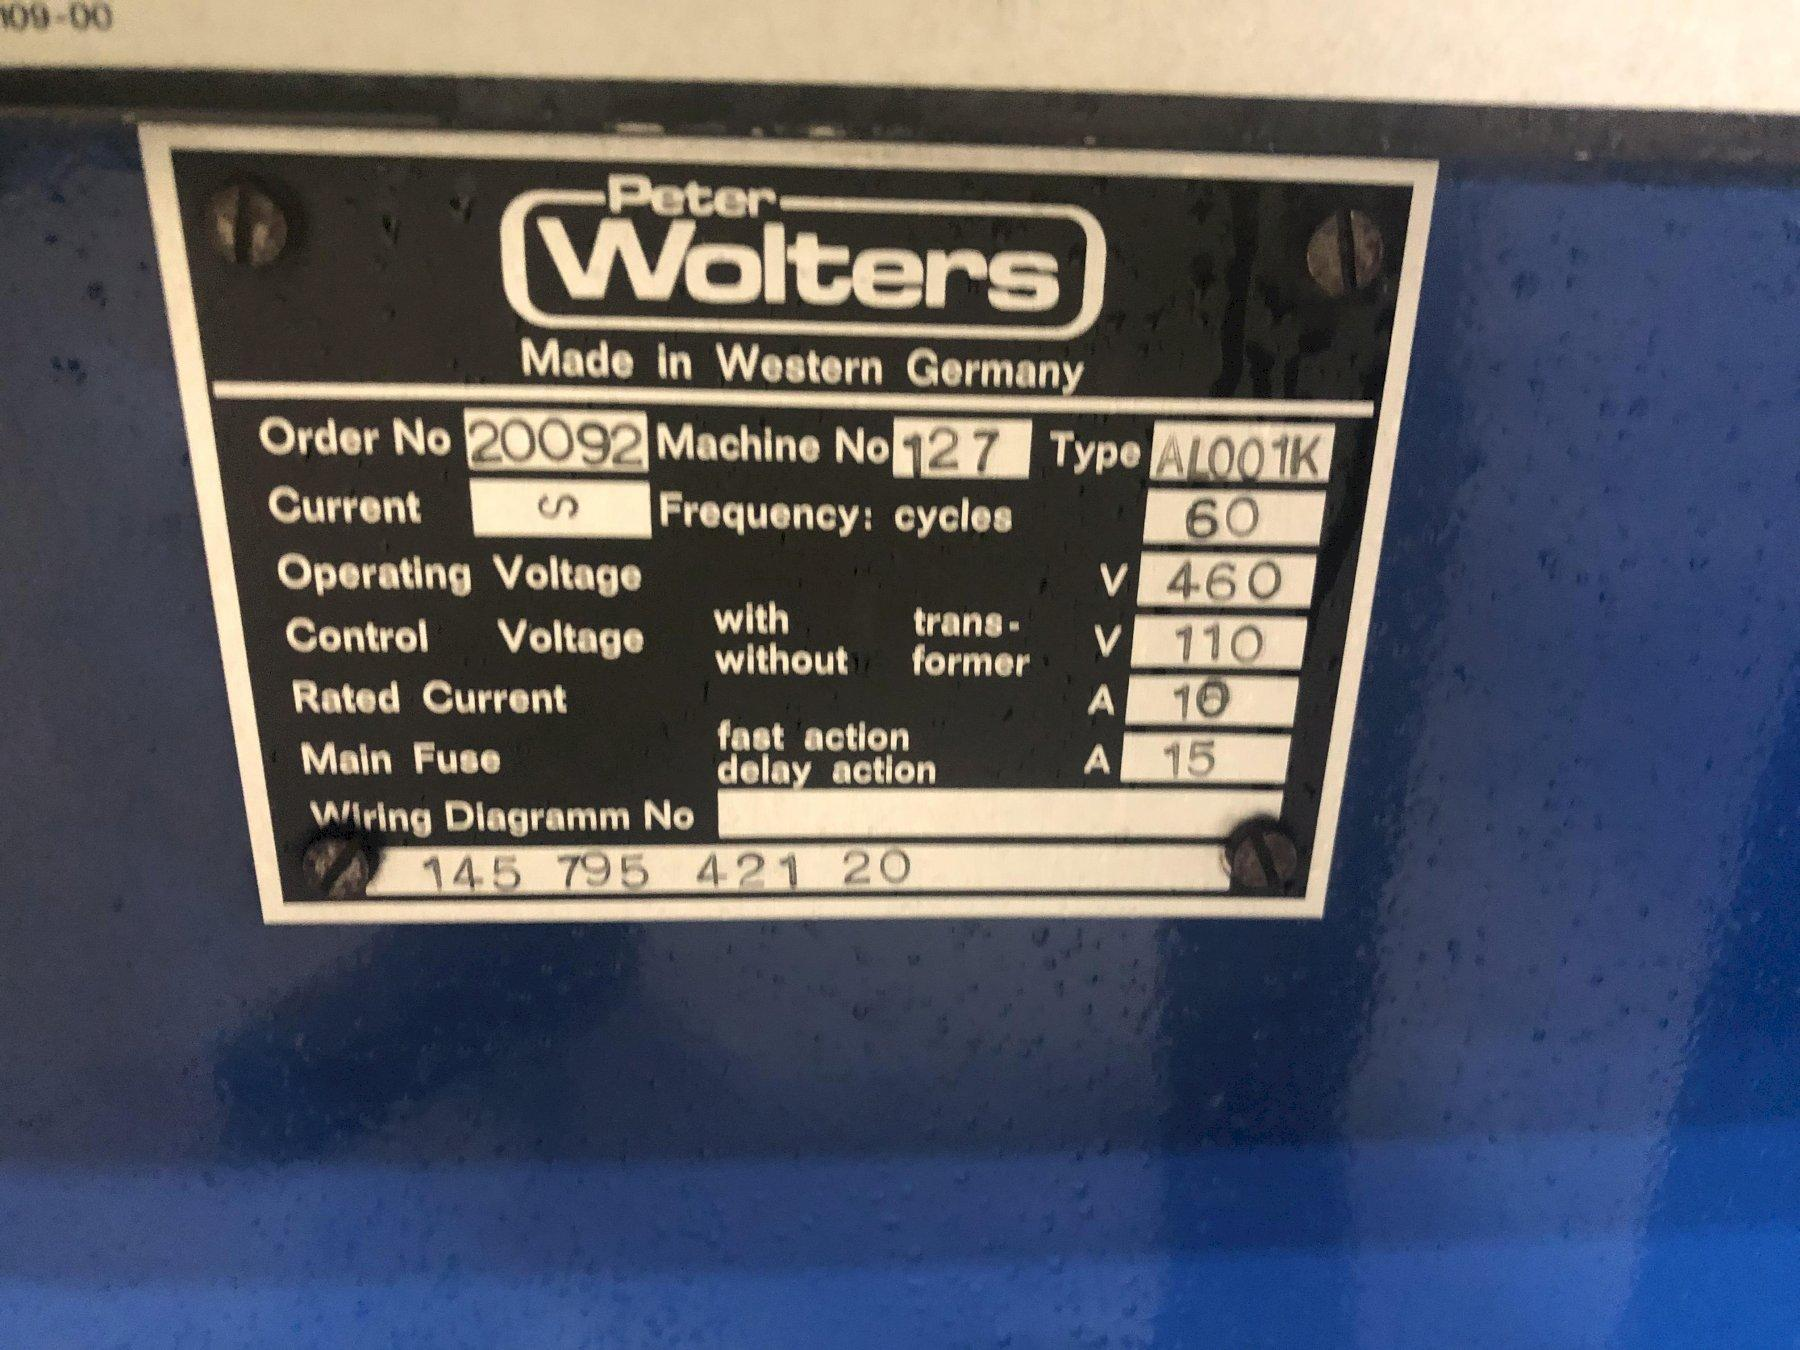 """12"""" Peter Wolters Model AL001K Fine Double-Sided Grinding & Lapping Machine"""